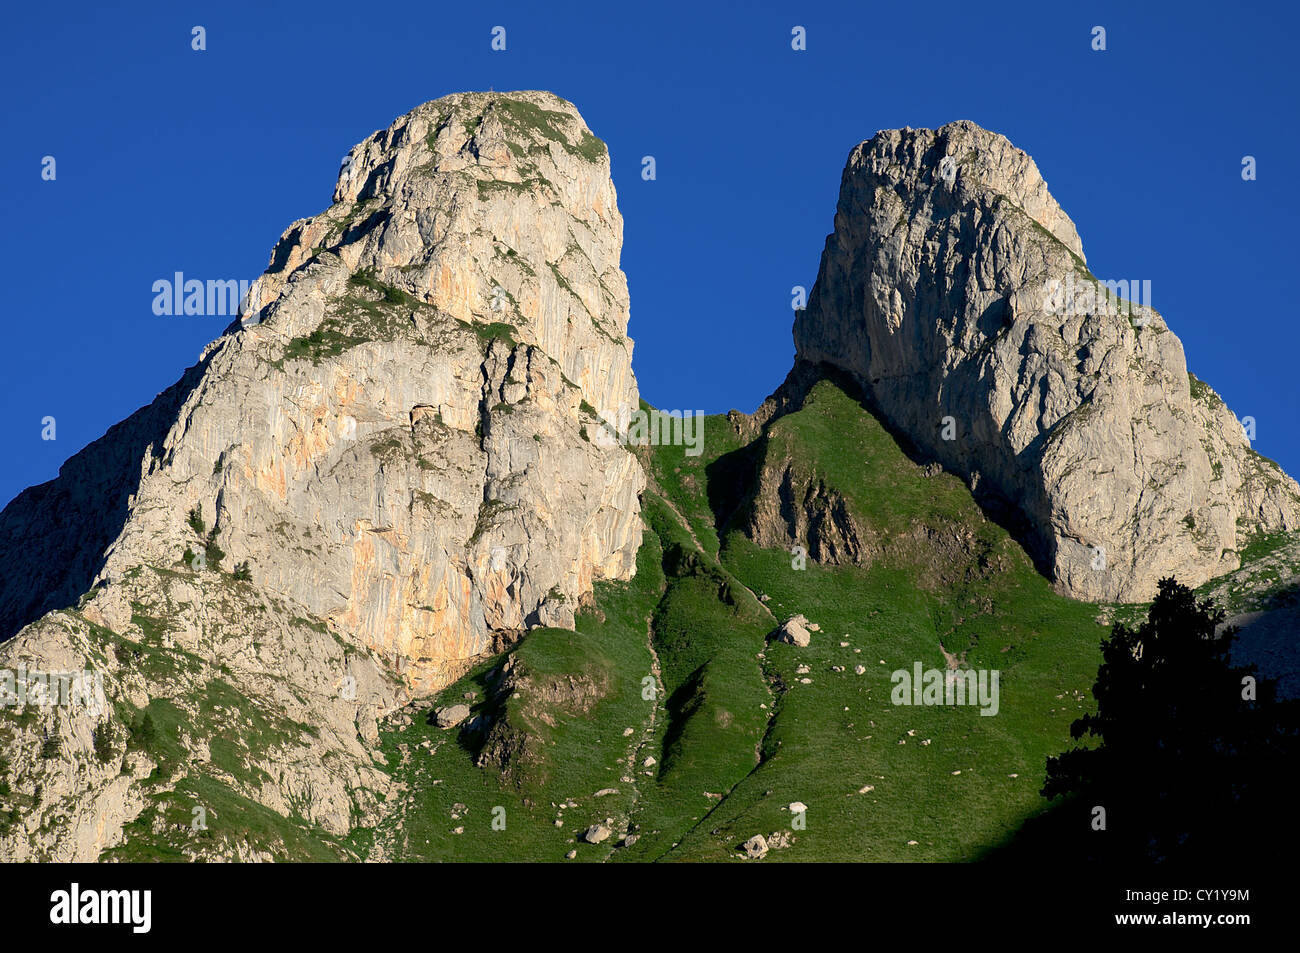 Les Jumelles (The Twins) summits in the Swiss Alps - Stock Image